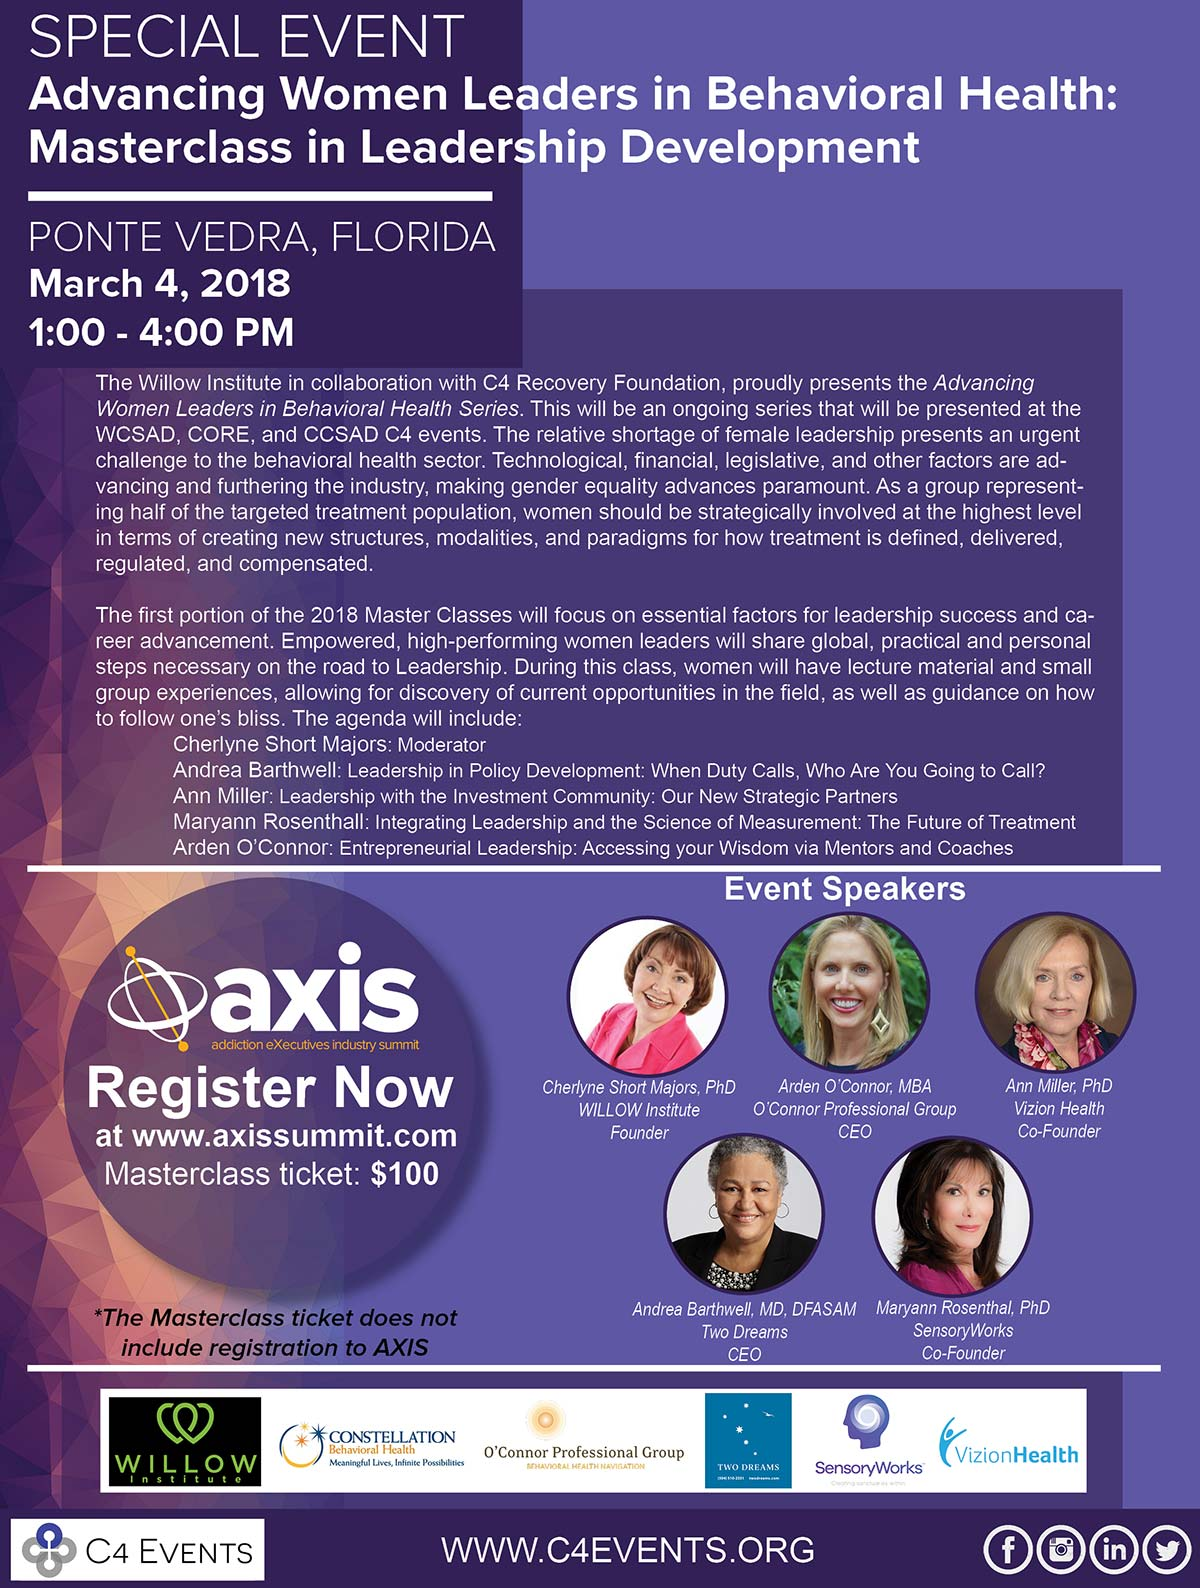 Special Event: Advancing Women Leaders in Behavioral Health